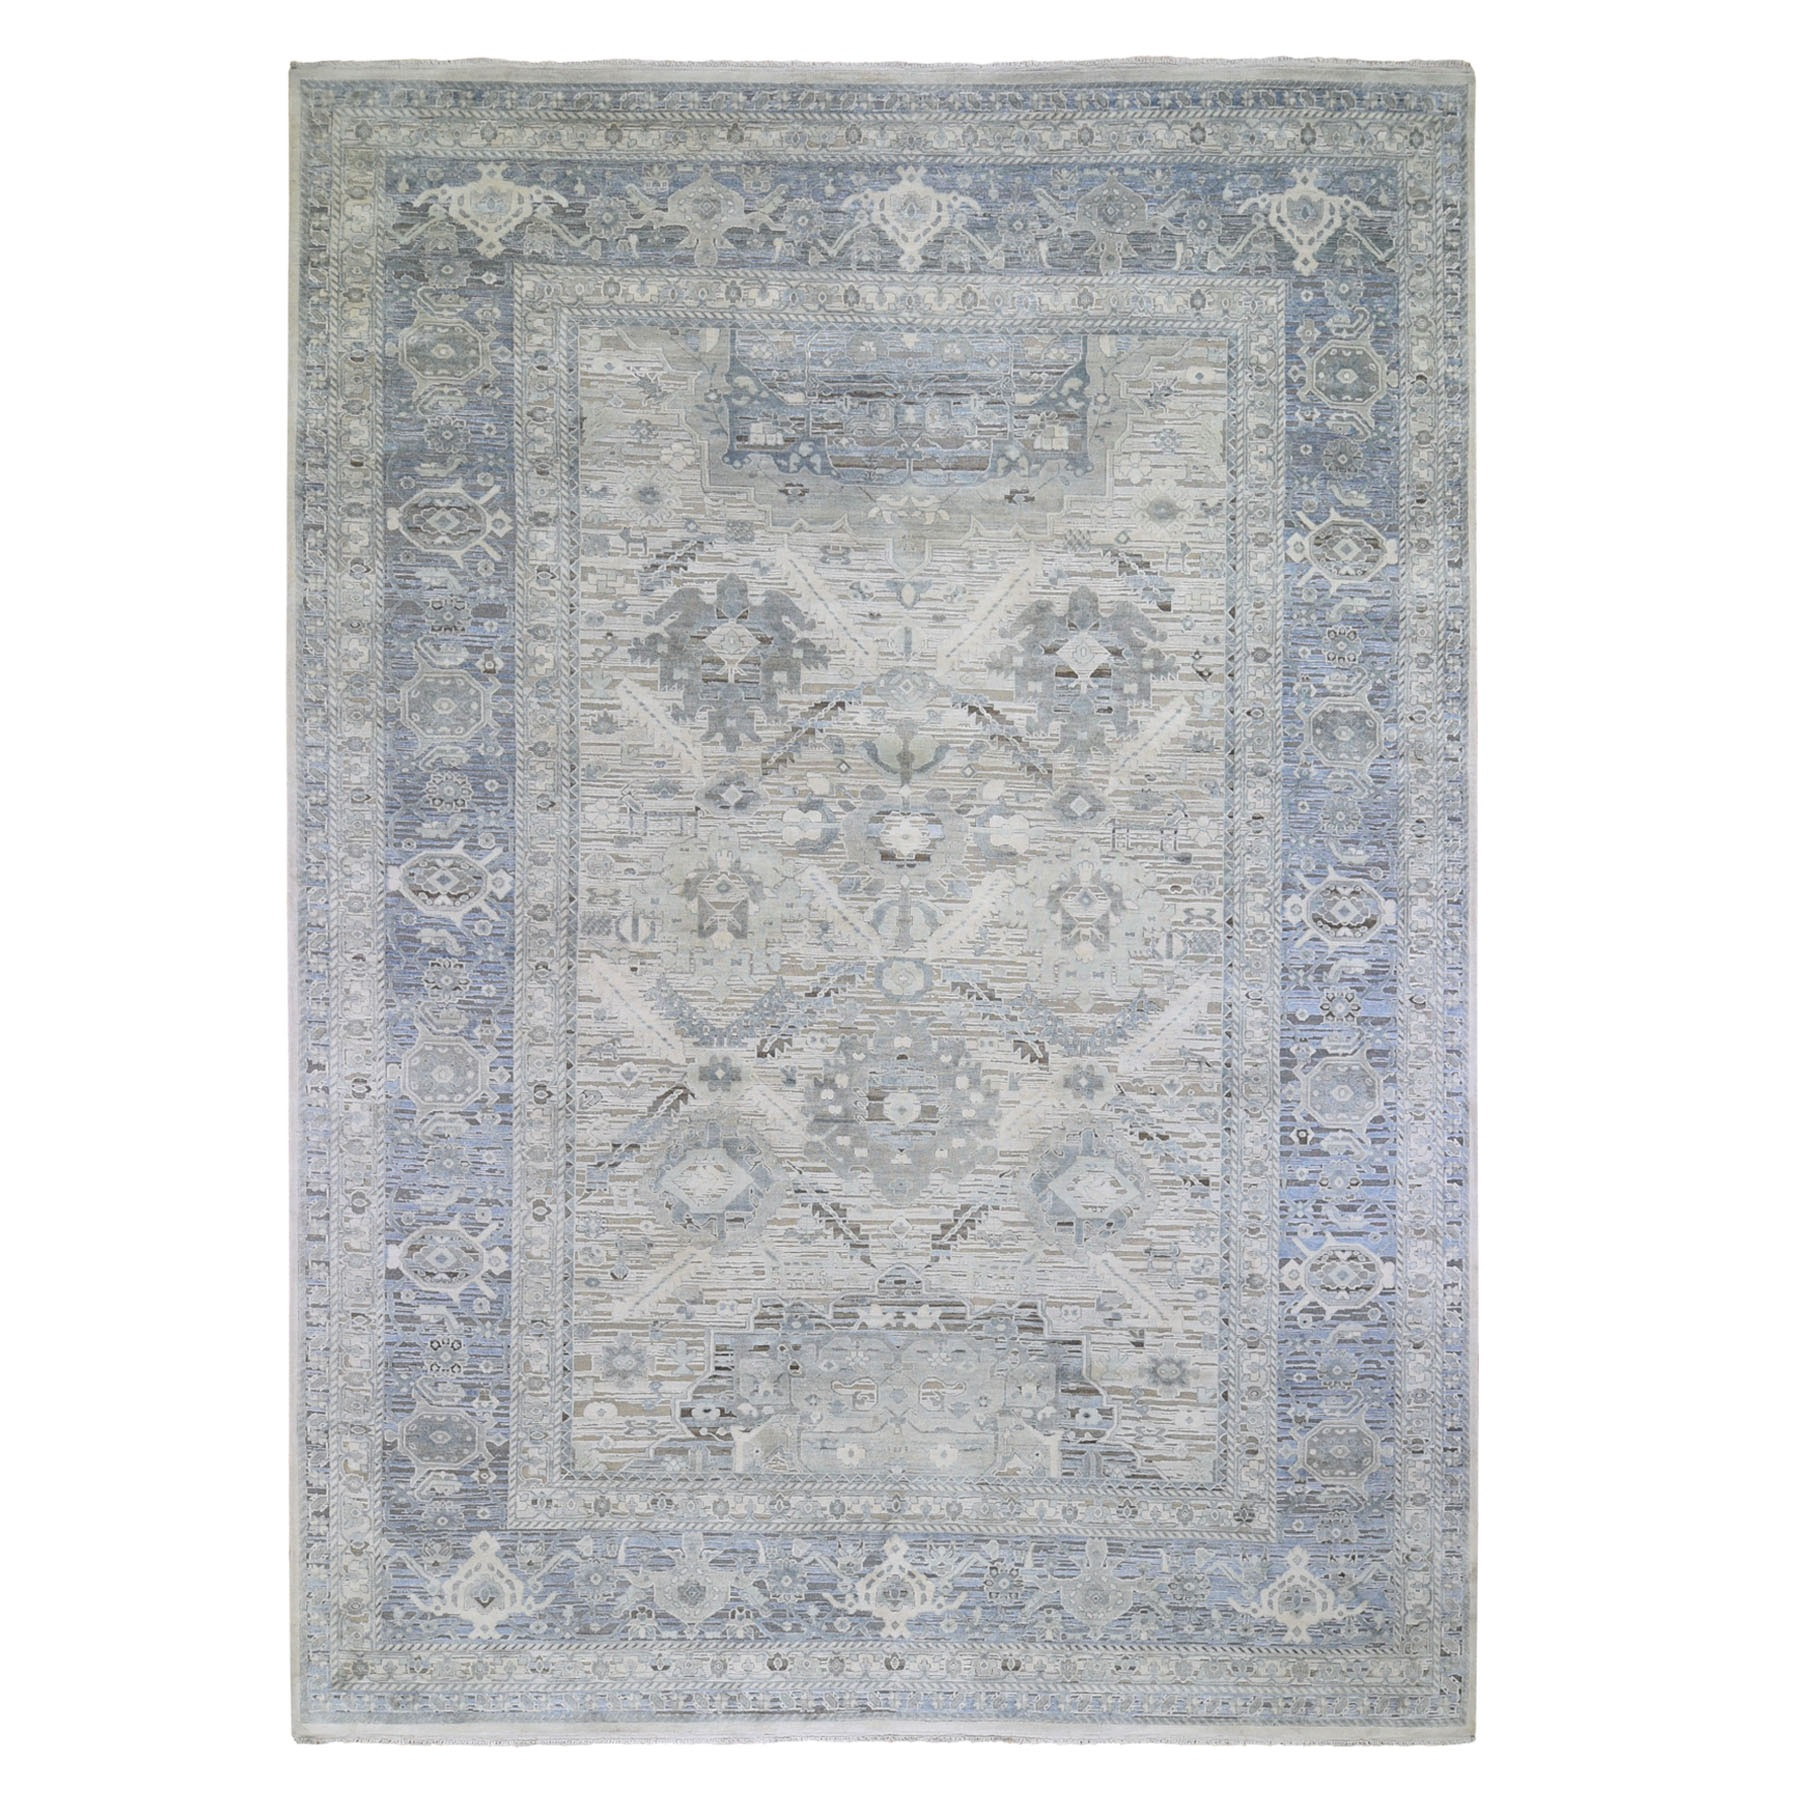 "10'x14'1"" Hand Woven Pure Silk And Textured Wool Oushak With Geometric Motif Oriental Rug"